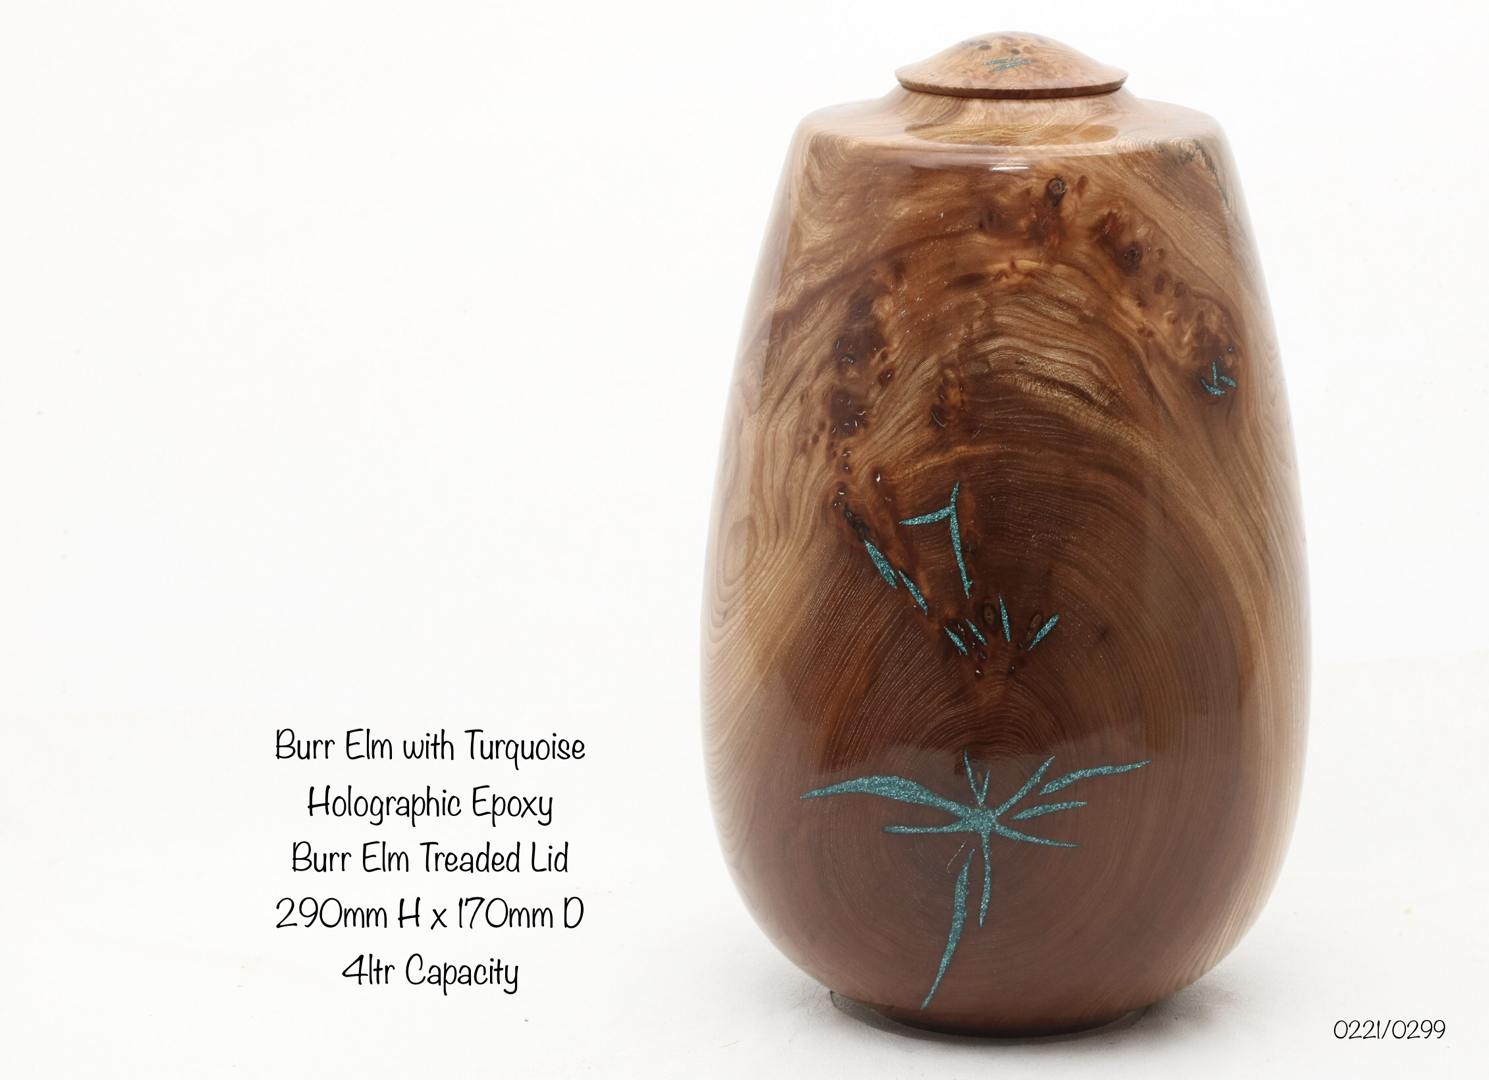 Burr Elm with Turquoise Holographic Epoxy